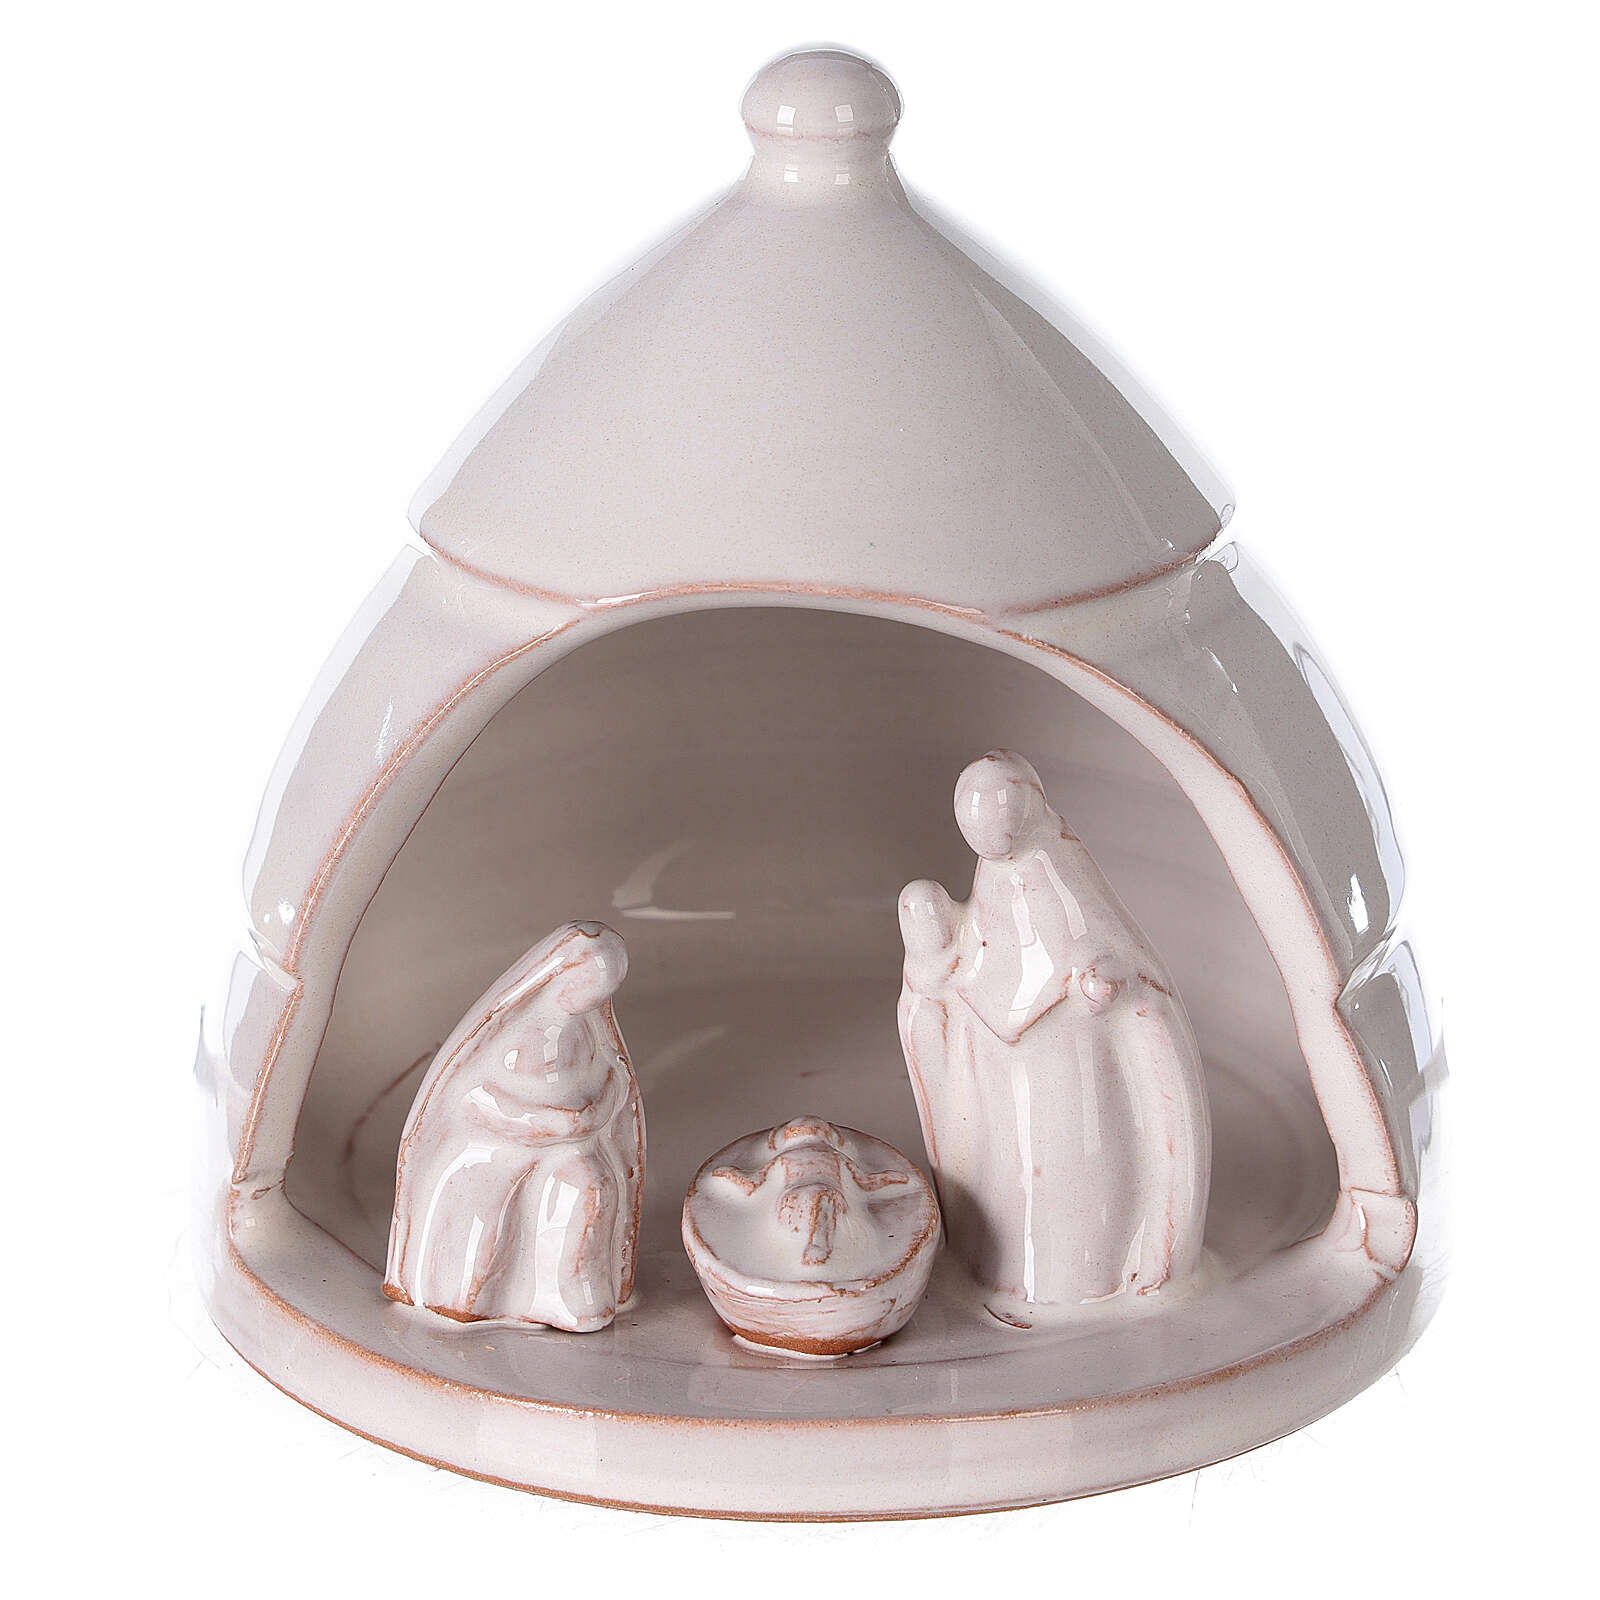 Rounded pine with miniature Nativity white Deruta terracotta 10 cm 4